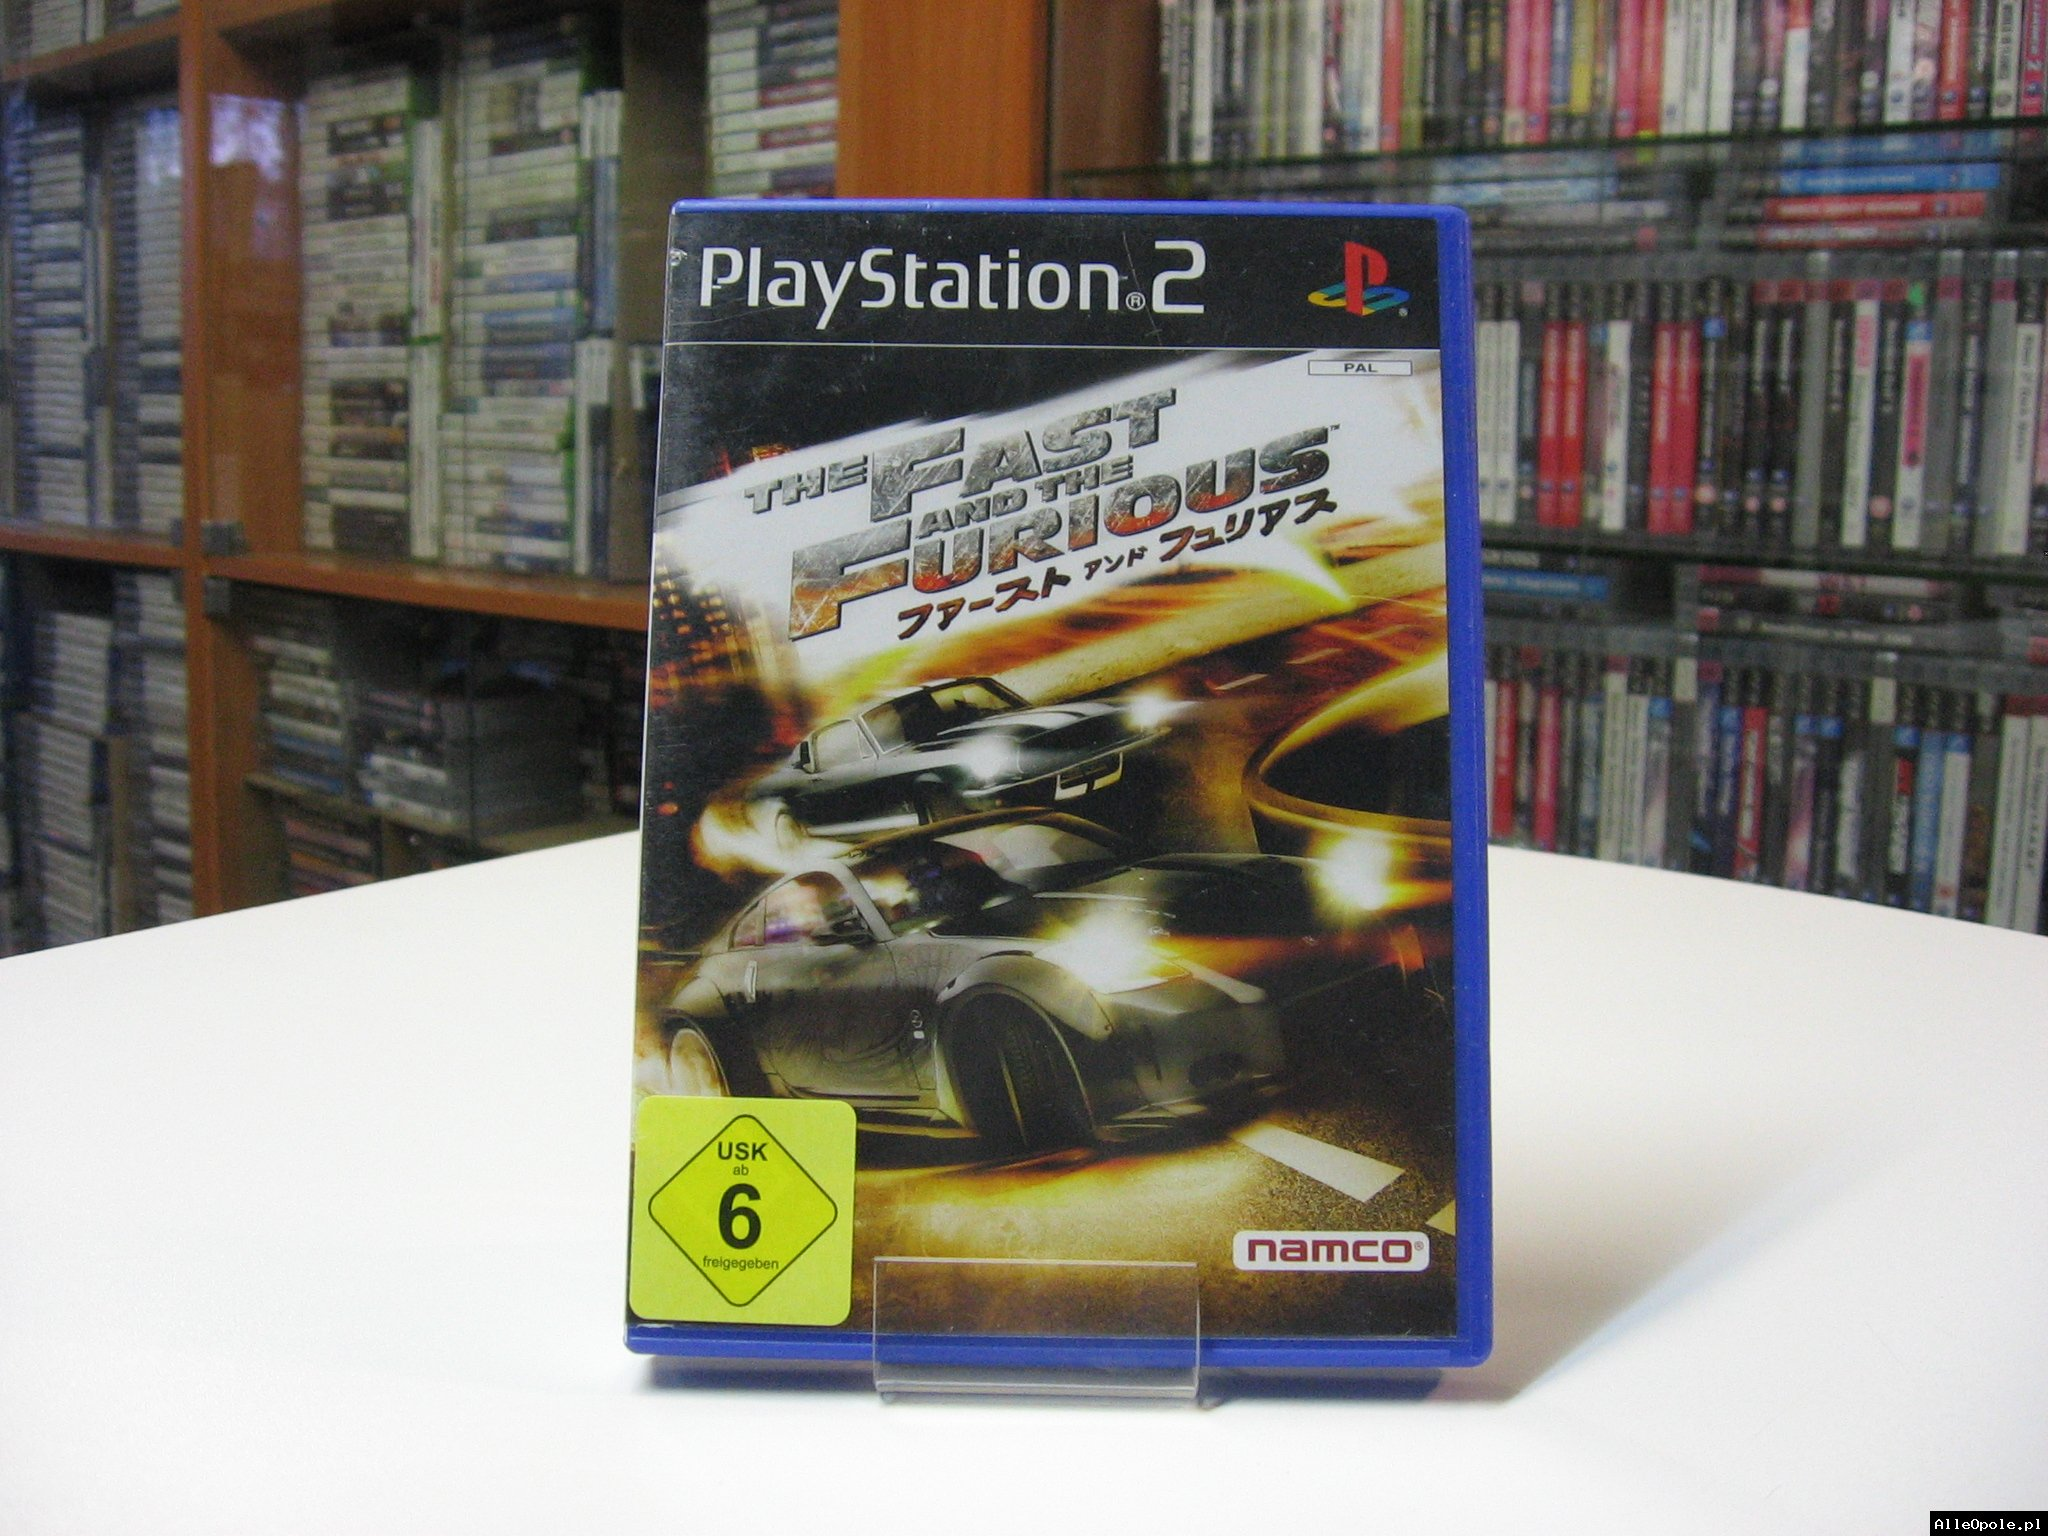 The Fast and the Furious - GRA Ps2 - Opole 0567